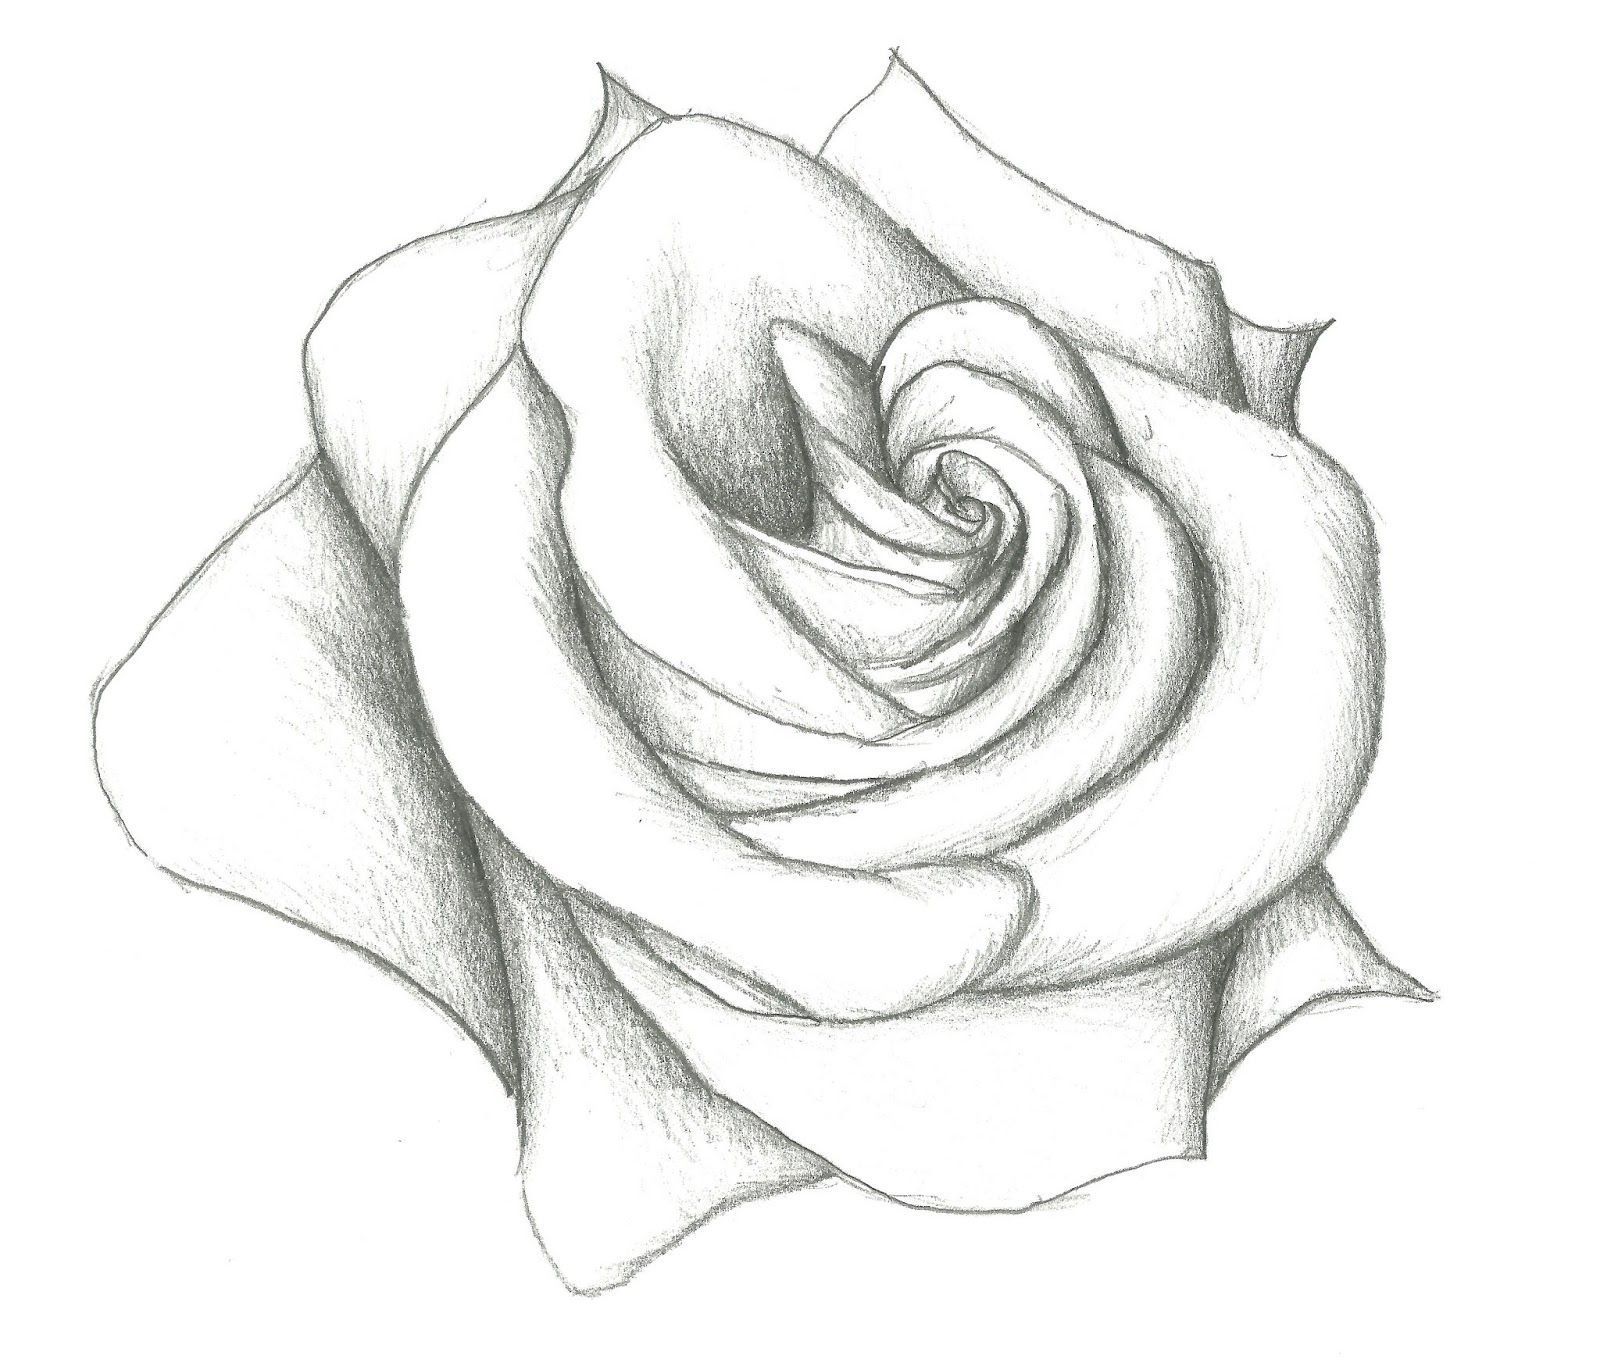 Rose Flower Drawings In Pencil Step By Step Easy Pencil Drawing Of